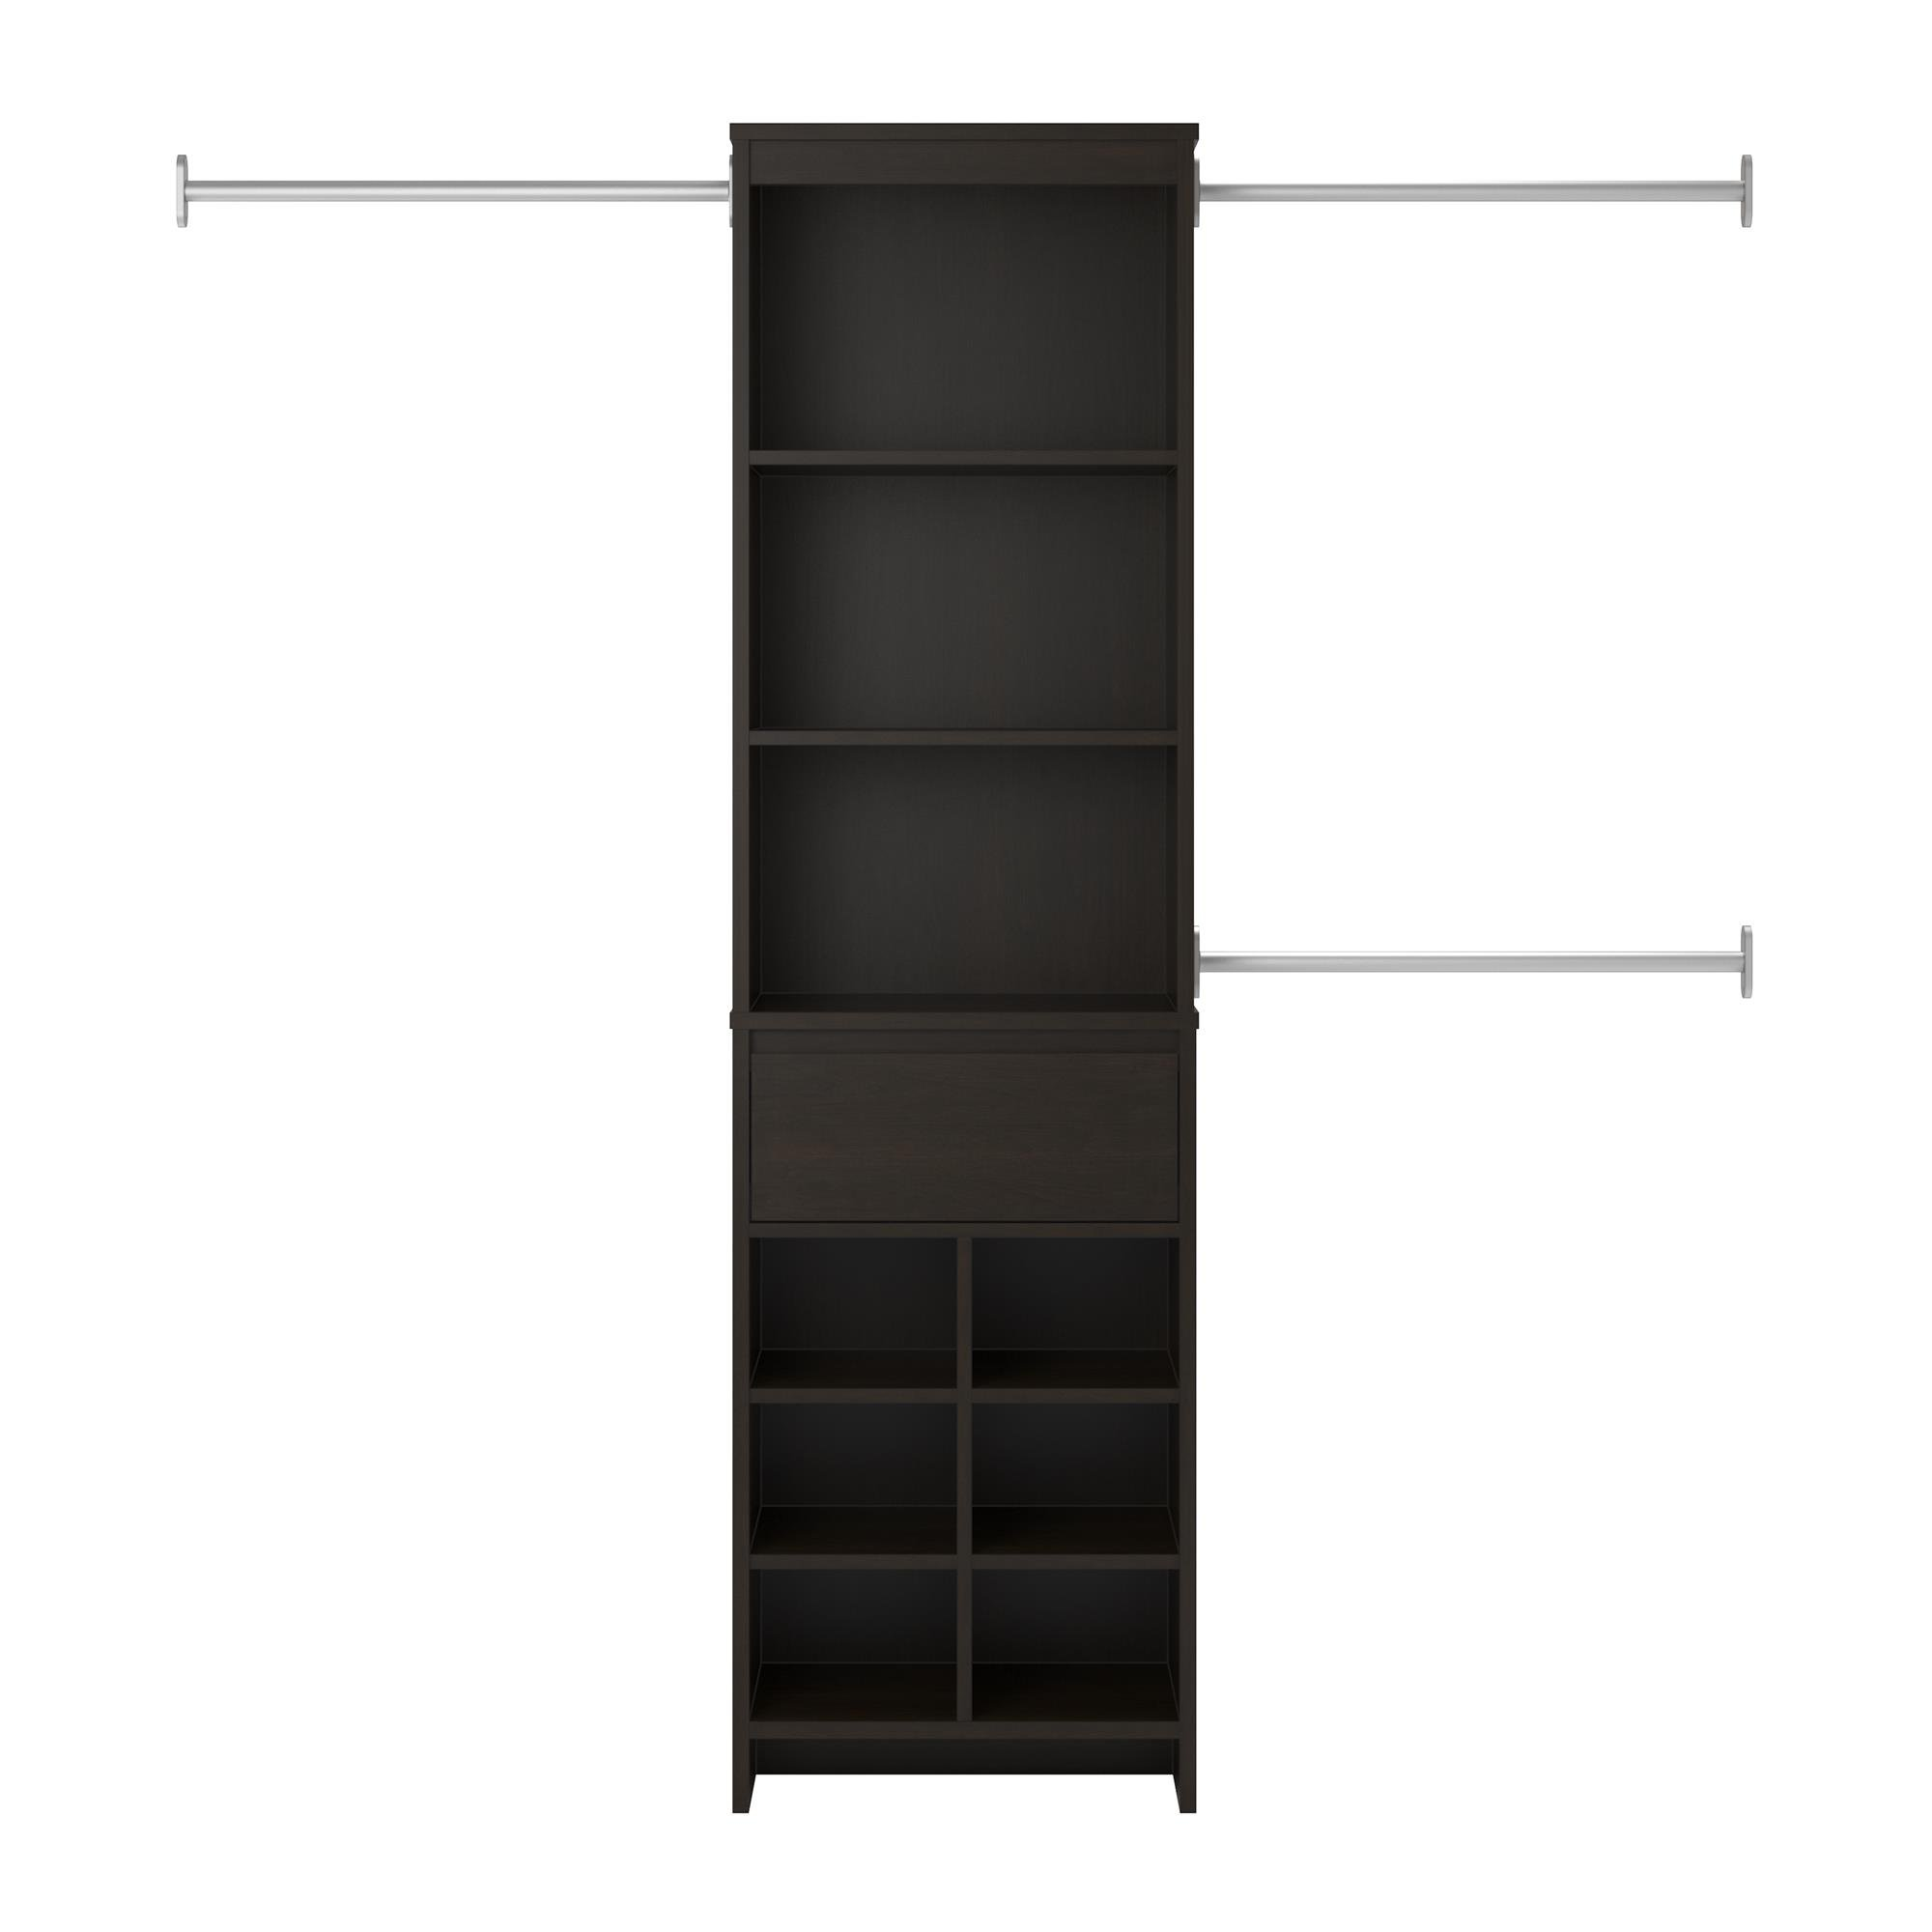 Ameriwood Home Adult Closet System, Espresso by Ameriwood Home (Image #5)